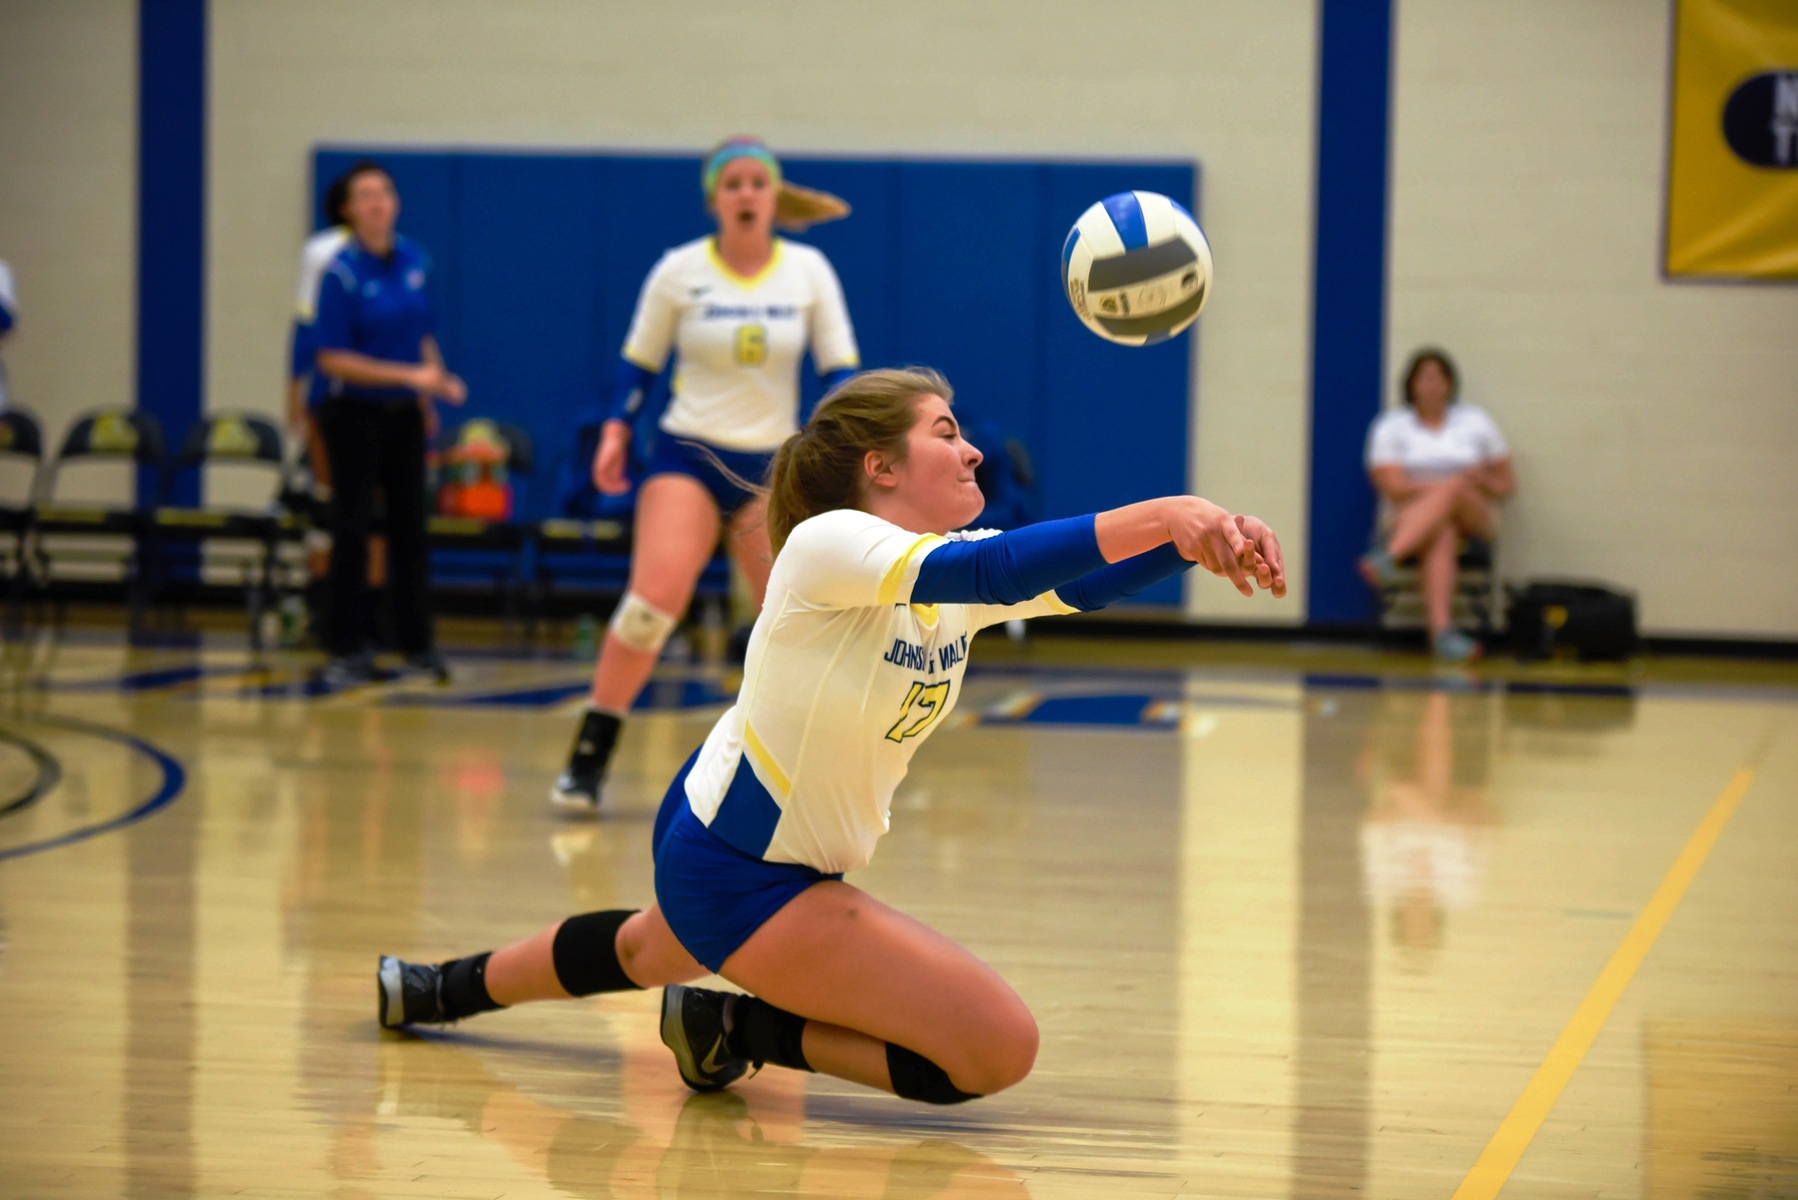 Volleyball Falls to Bob Jones on Senior Day